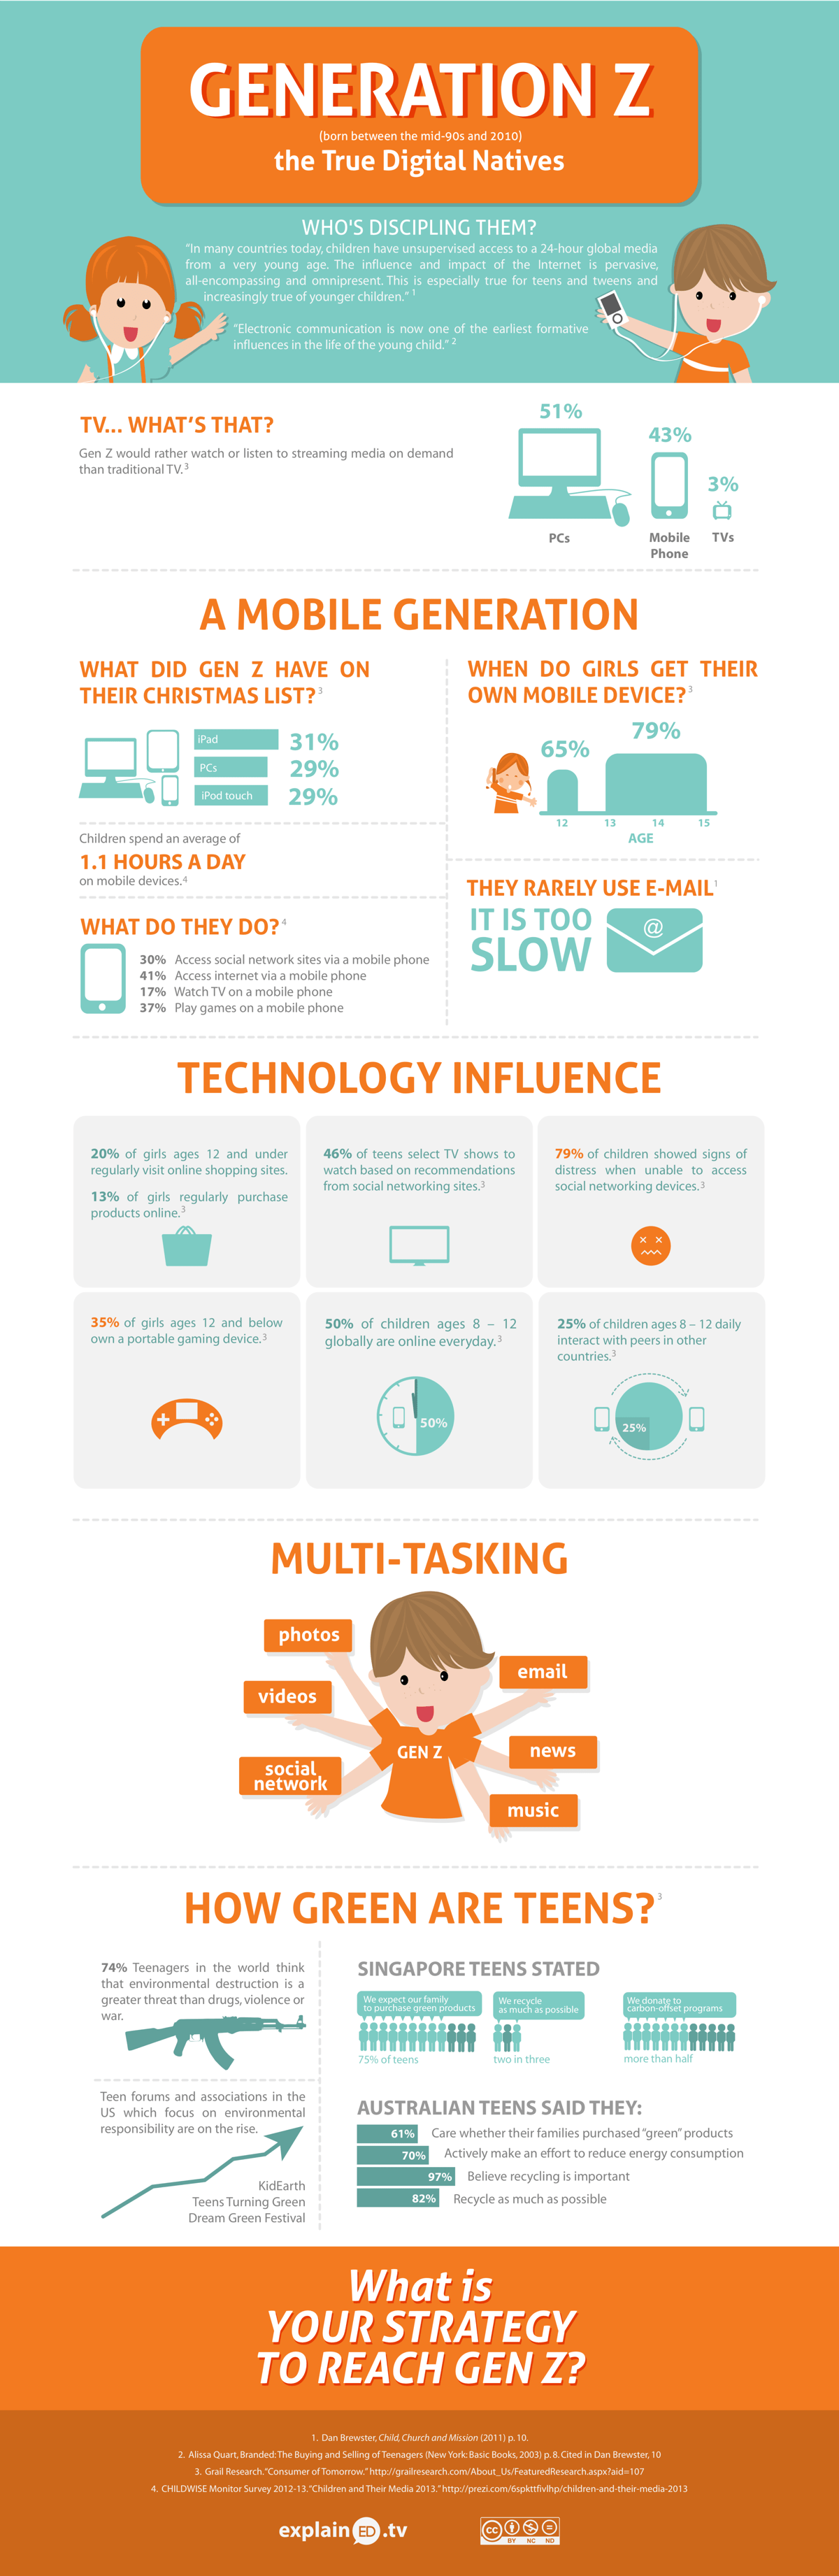 Three Things To Know About Marketing To Generation Z